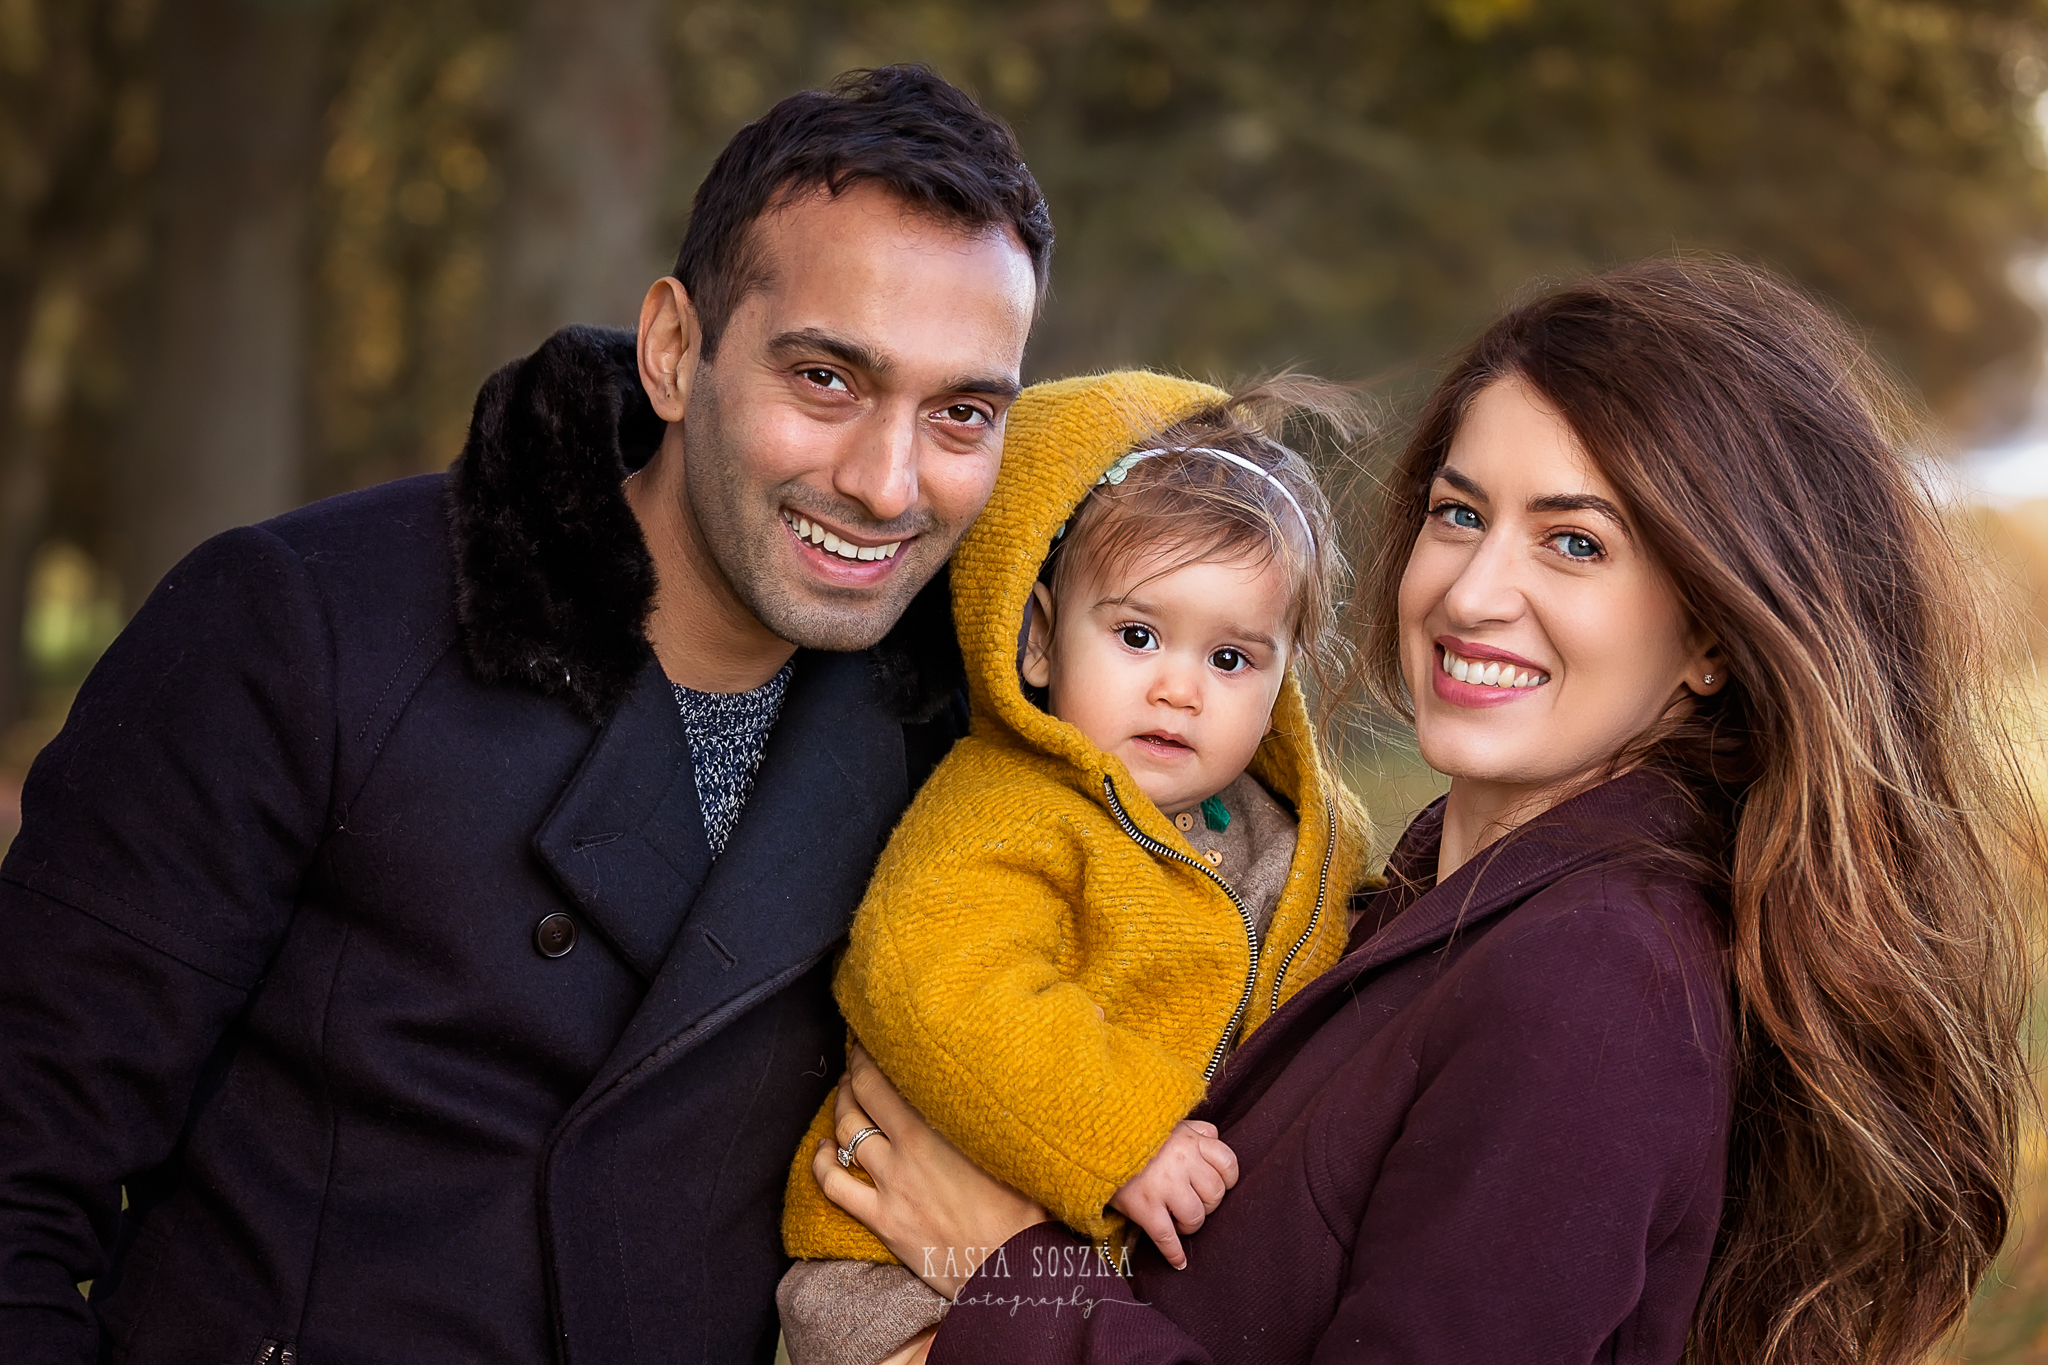 Family photography Leeds, York, Harrogate, Bradford: autumn family outdoor session in a park in Leeds, Yorkshire.